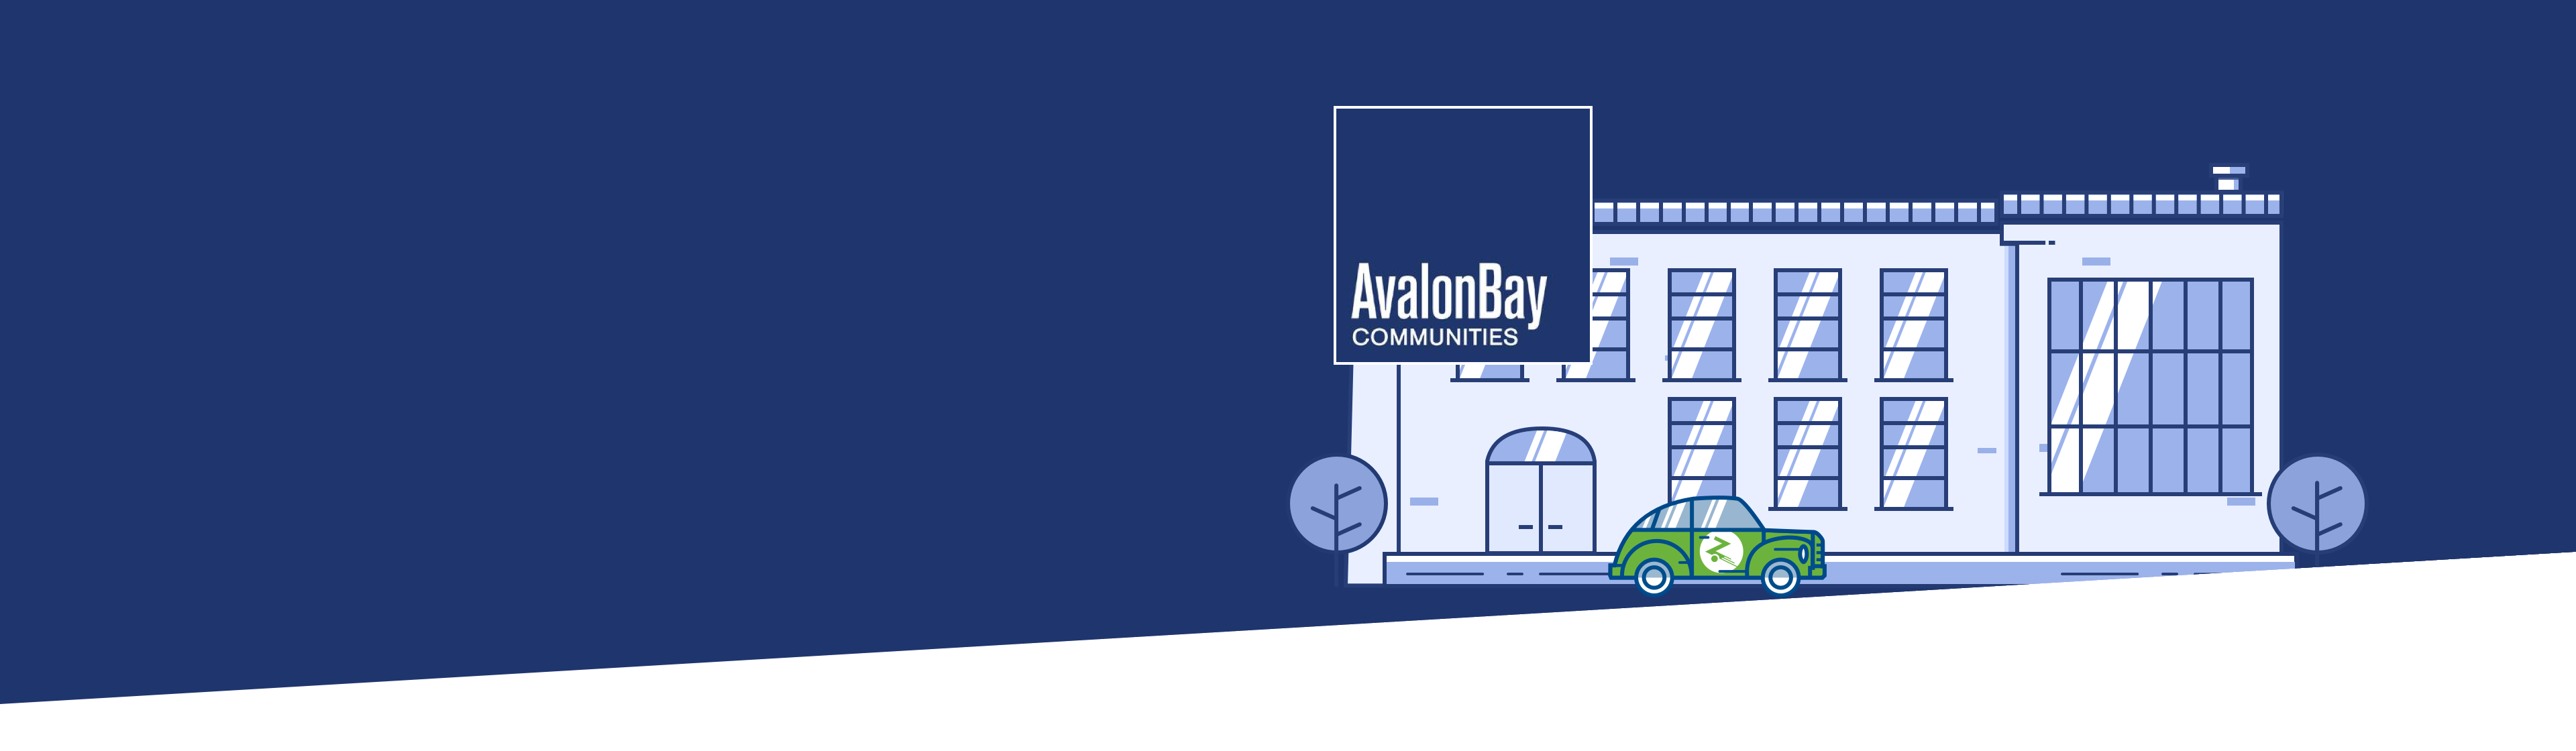 Building and Avalon Bay logo